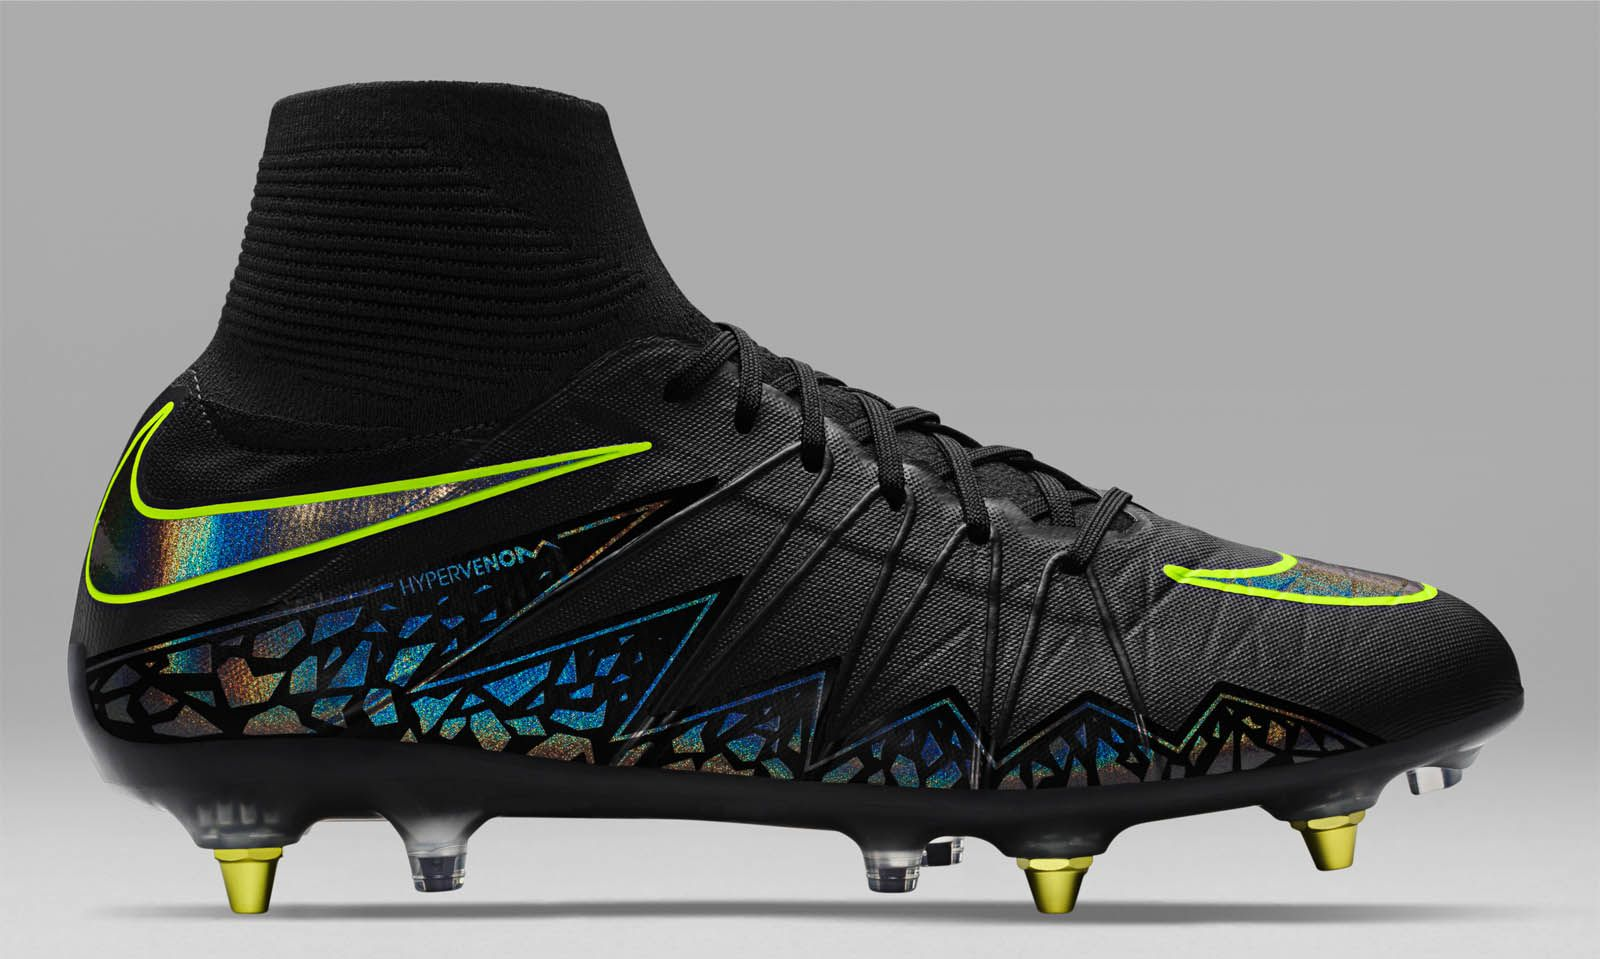 b4918667ce7 Nike just unveiled an all-new boot technology:,the revolutionary Nike Anti-